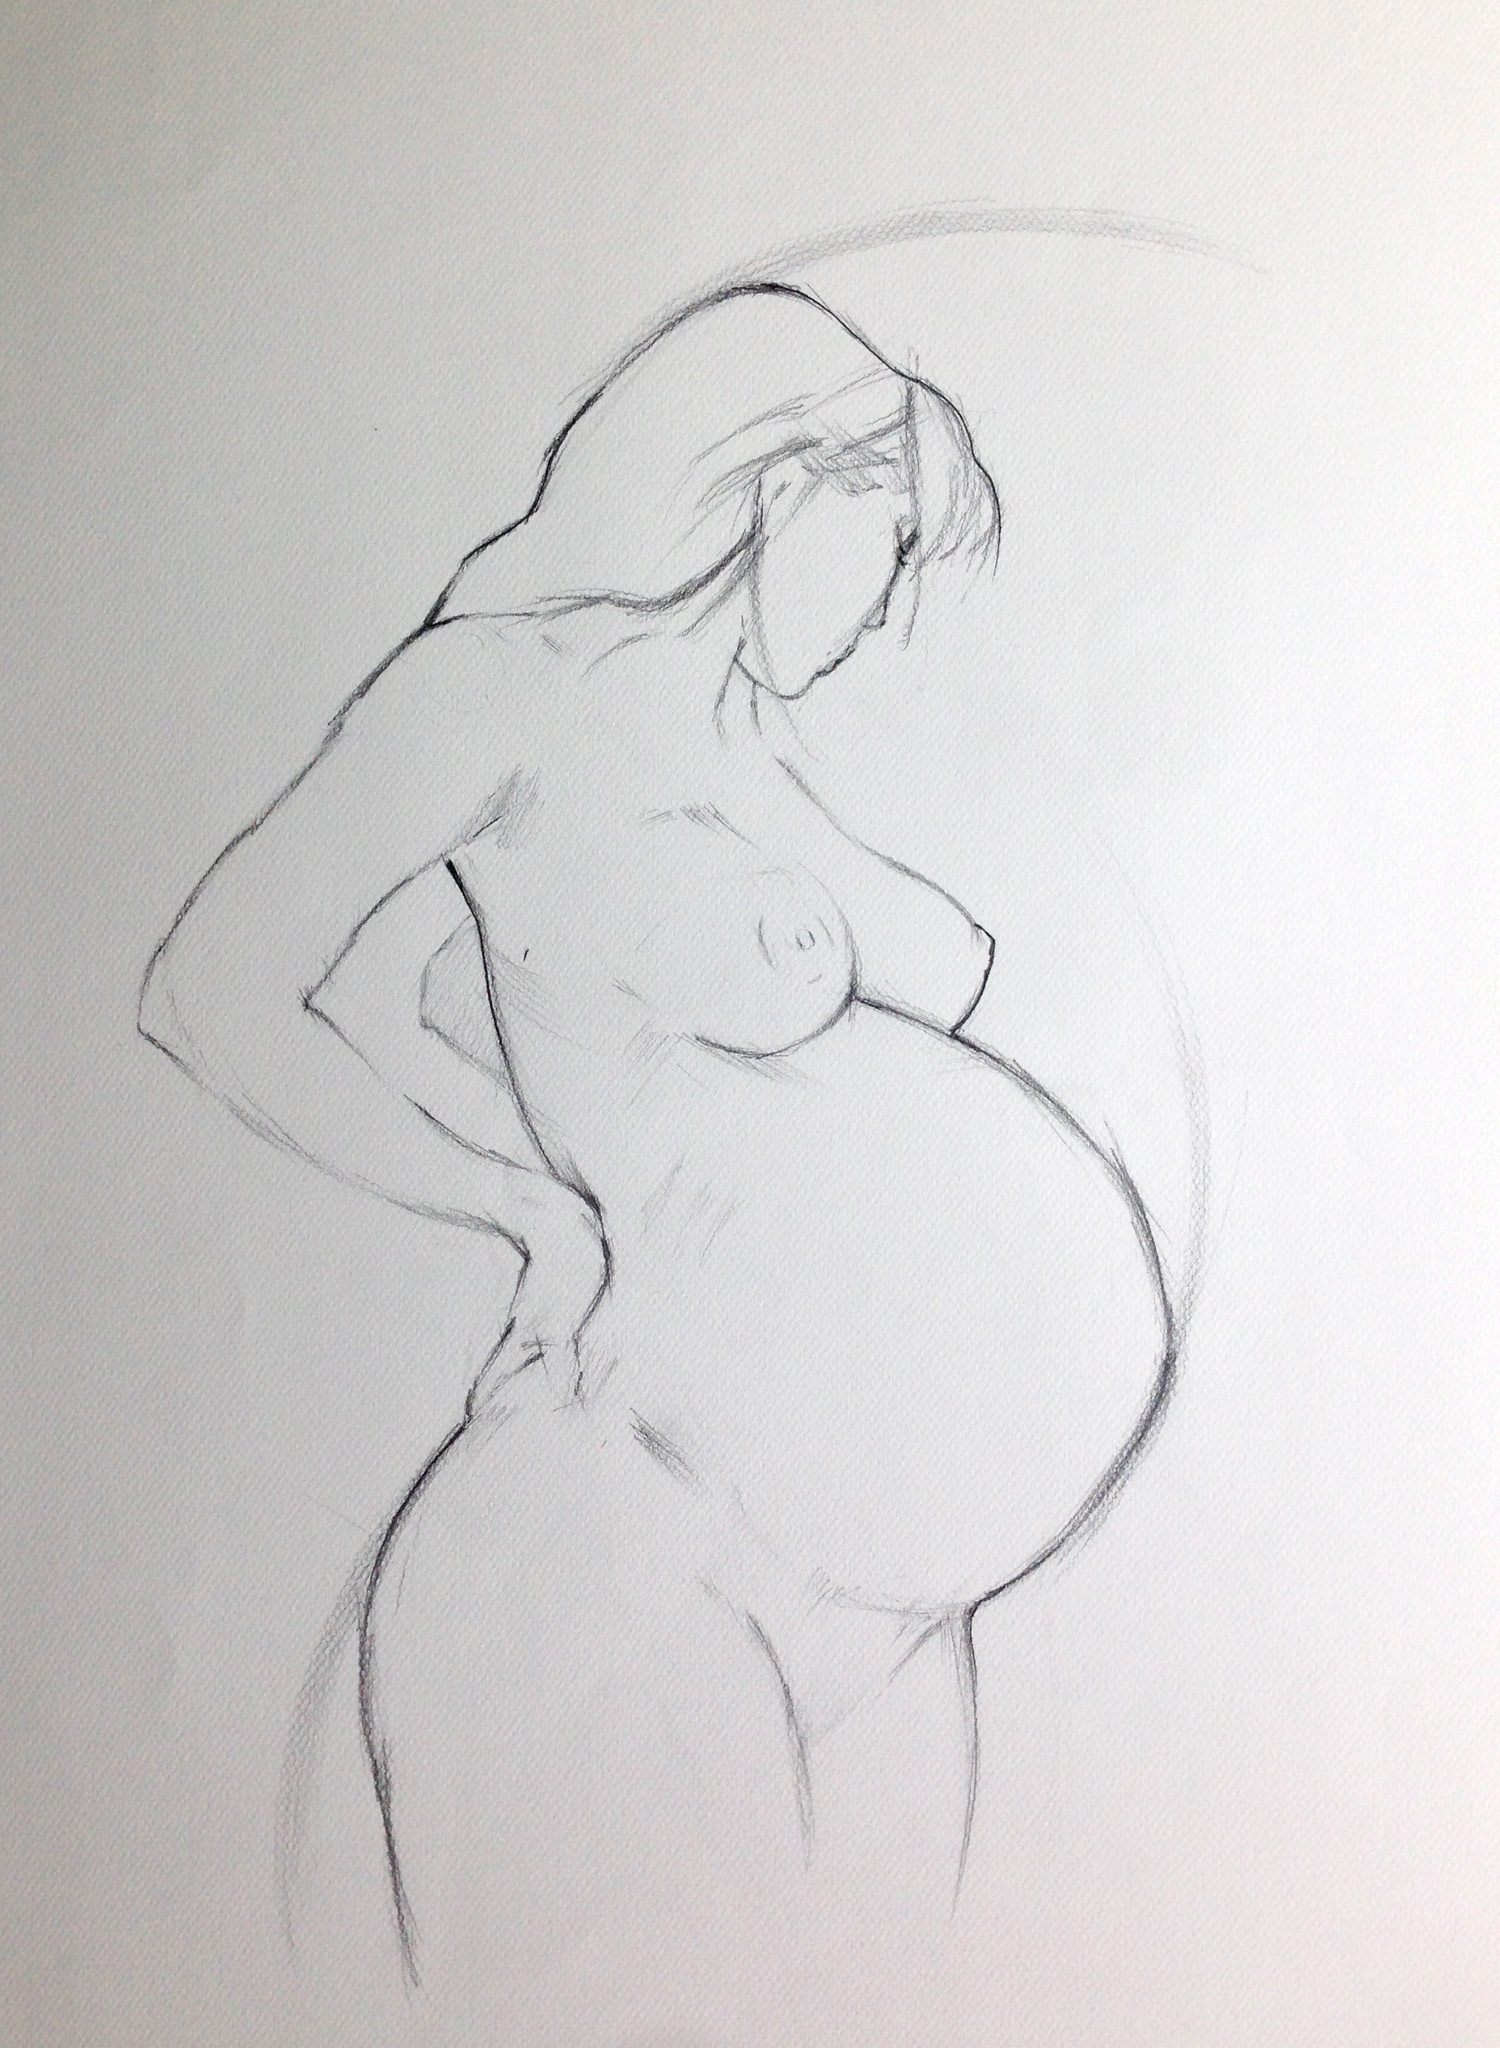 Motherhood II - commissioned by an obstetrics clinic